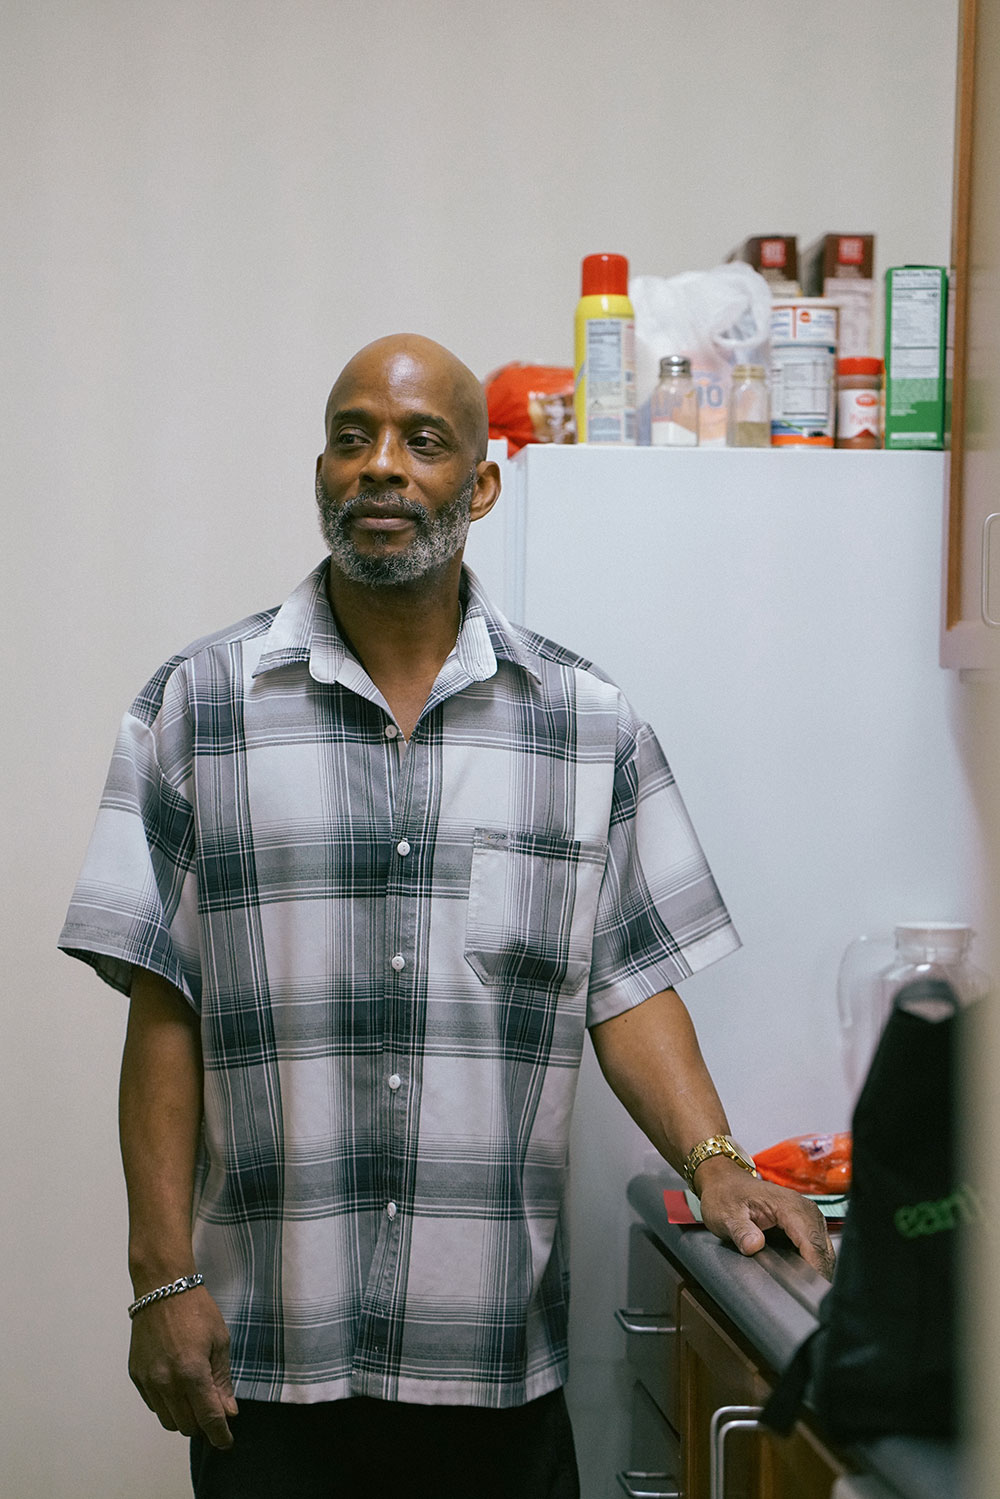 Robert experienced homelessness for nearly 30 years before moving into the Renaissance Downtown Lofts in early 2018.